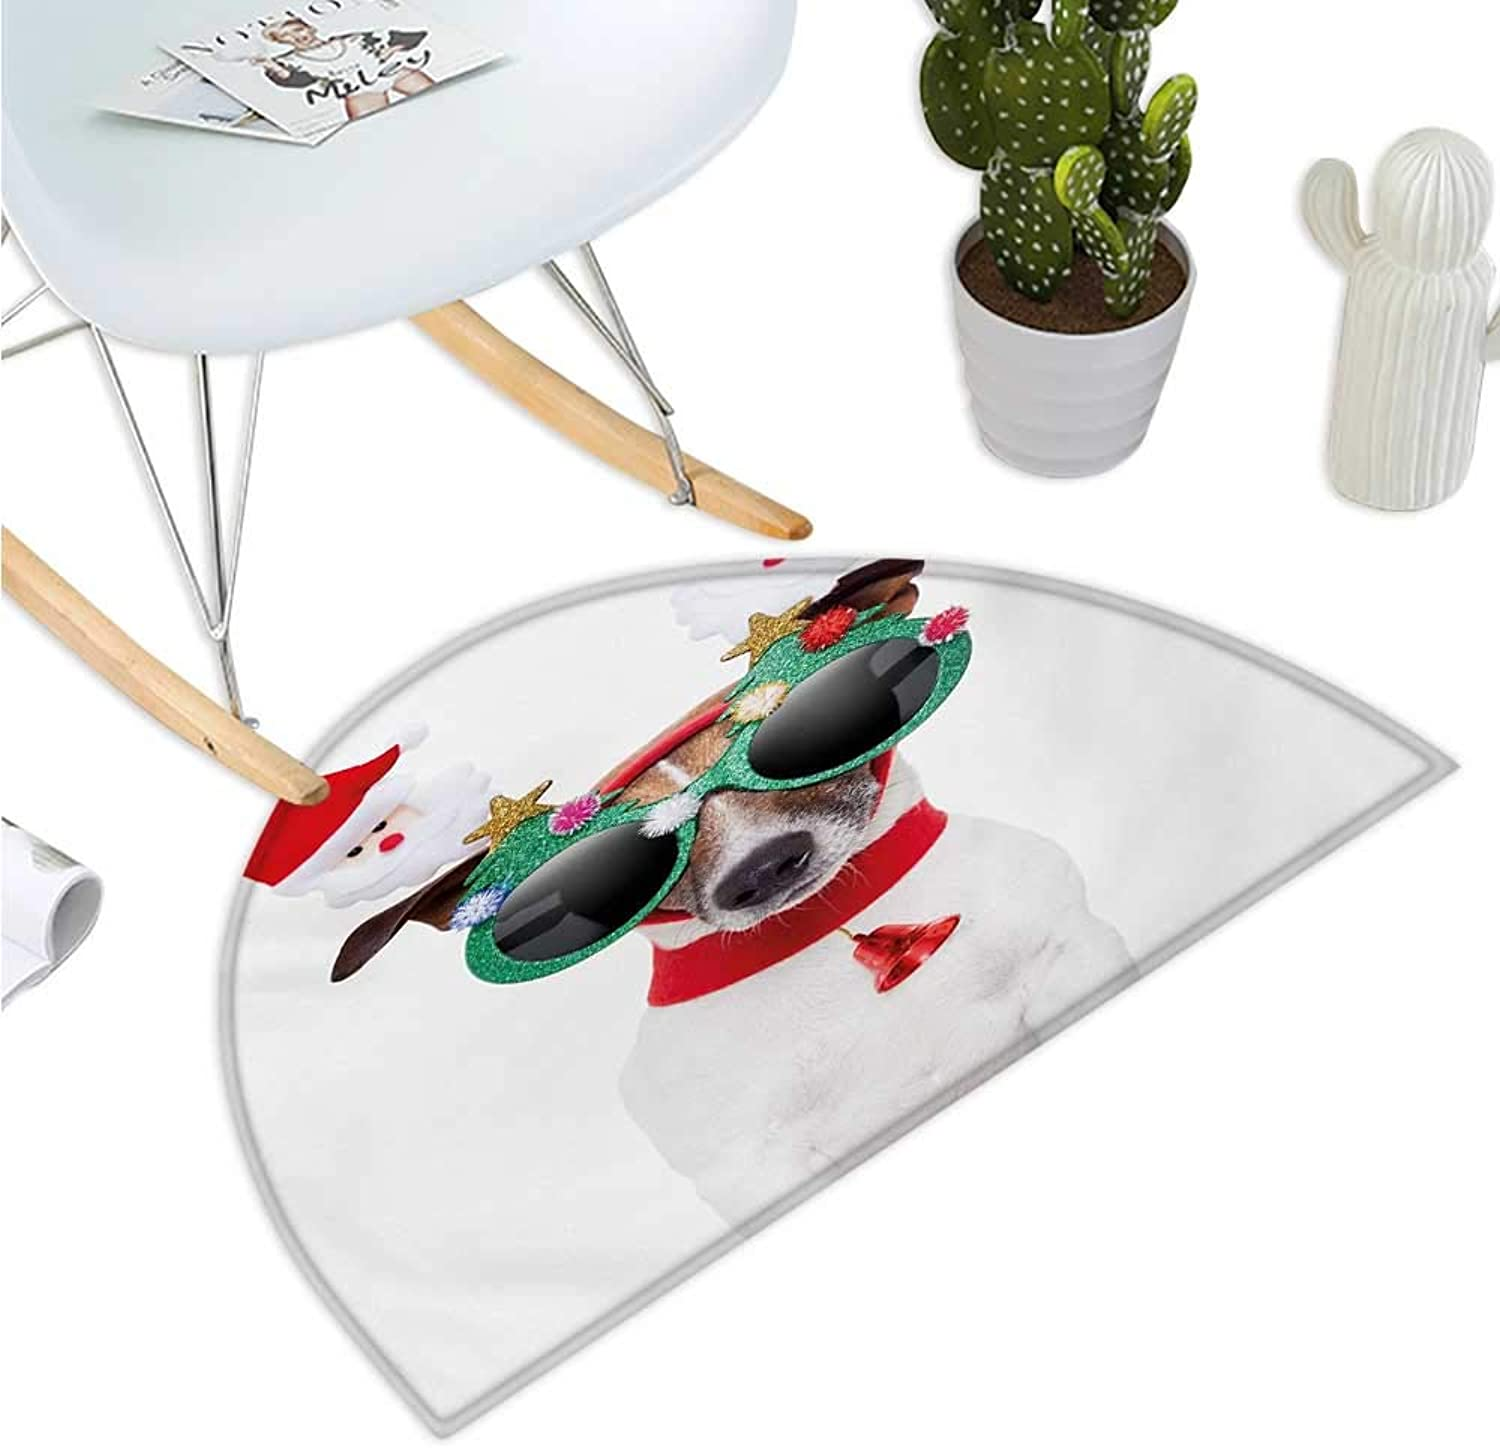 Christmas Semicircular Cushion Funny Puppy Jack Russel Dog with Hilarious Sunglasses Santa Figures and Bell Entry Door Mat H 51.1  xD 76.7  Multicolor